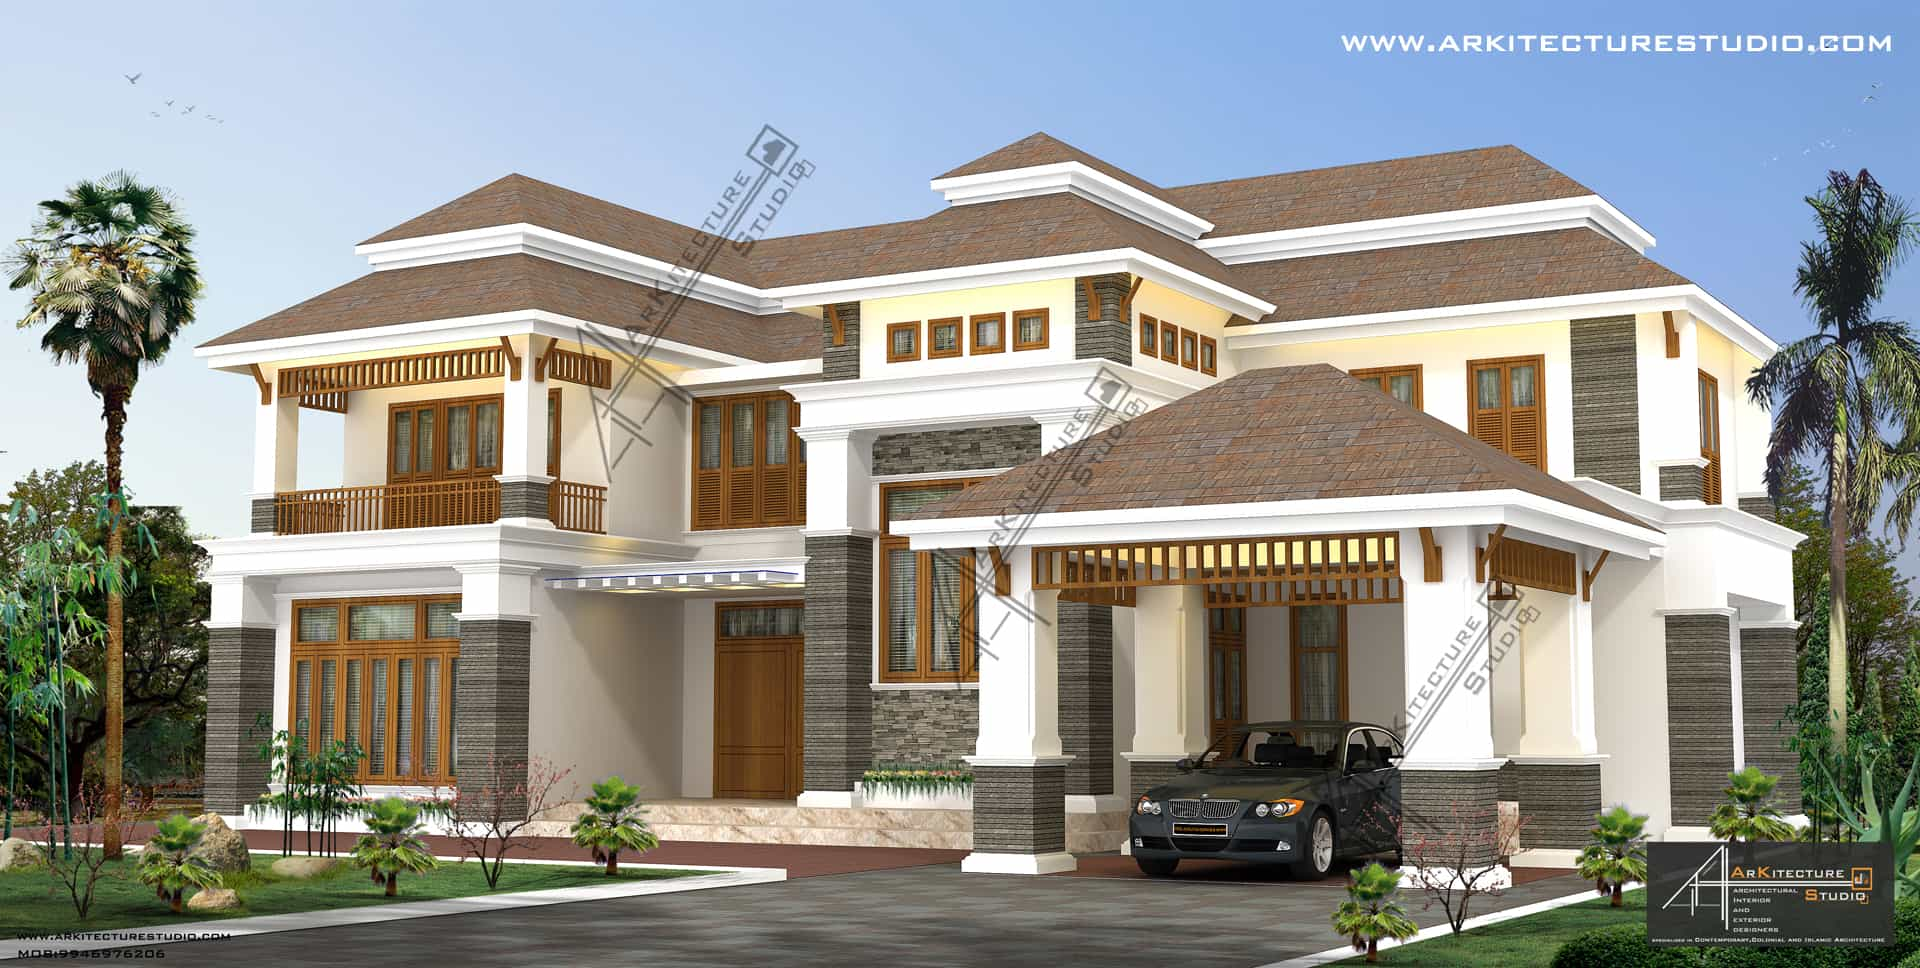 Colonial style house designs in kerala at 3500 sqft 5000 for 5000 sq ft house plans in kerala